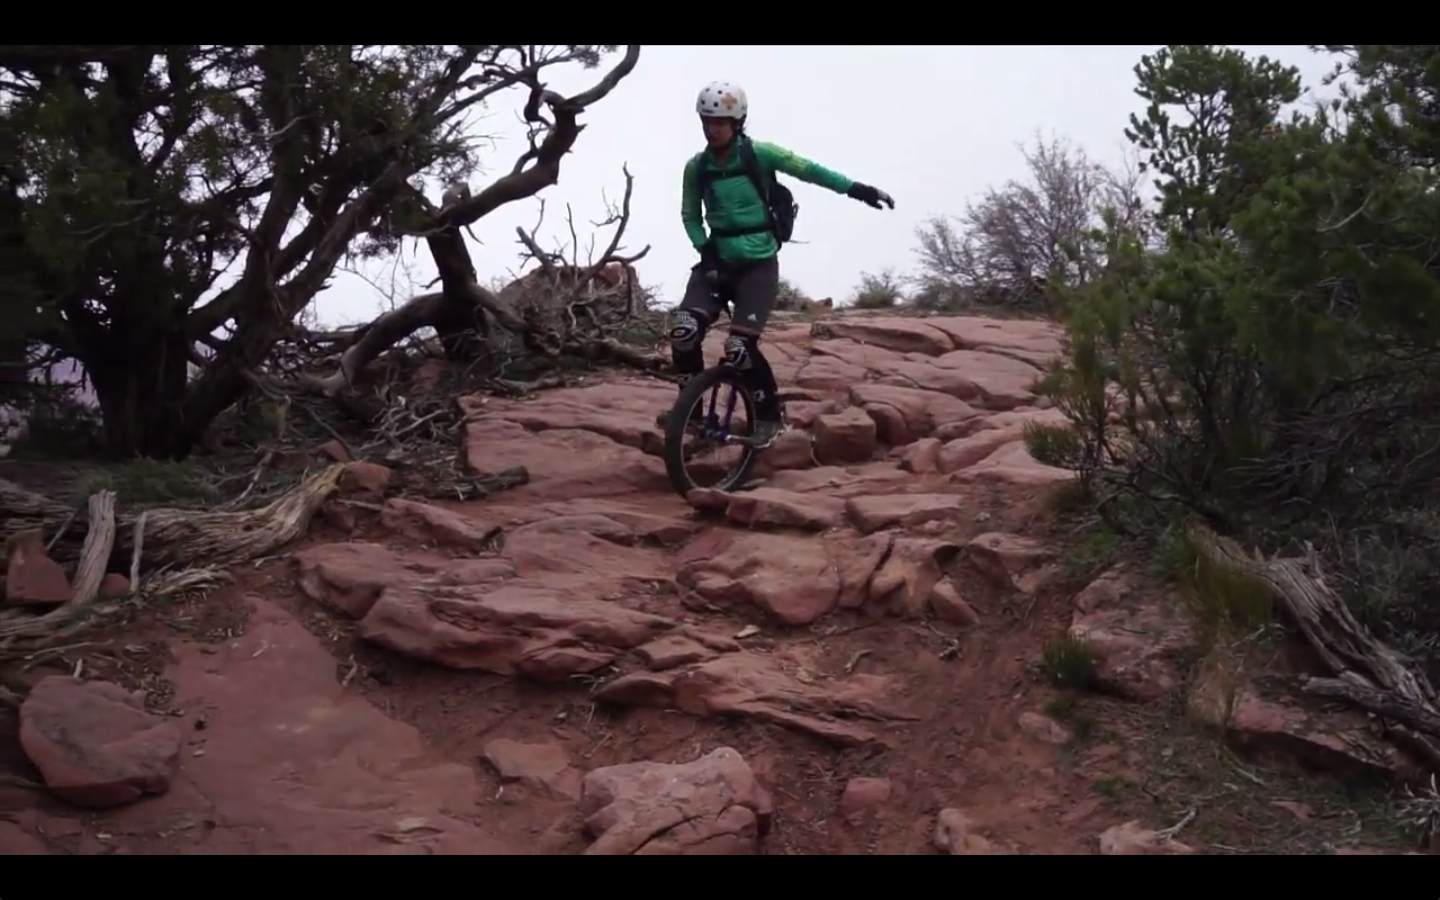 Moab Munifest: Kris Holm Team Video